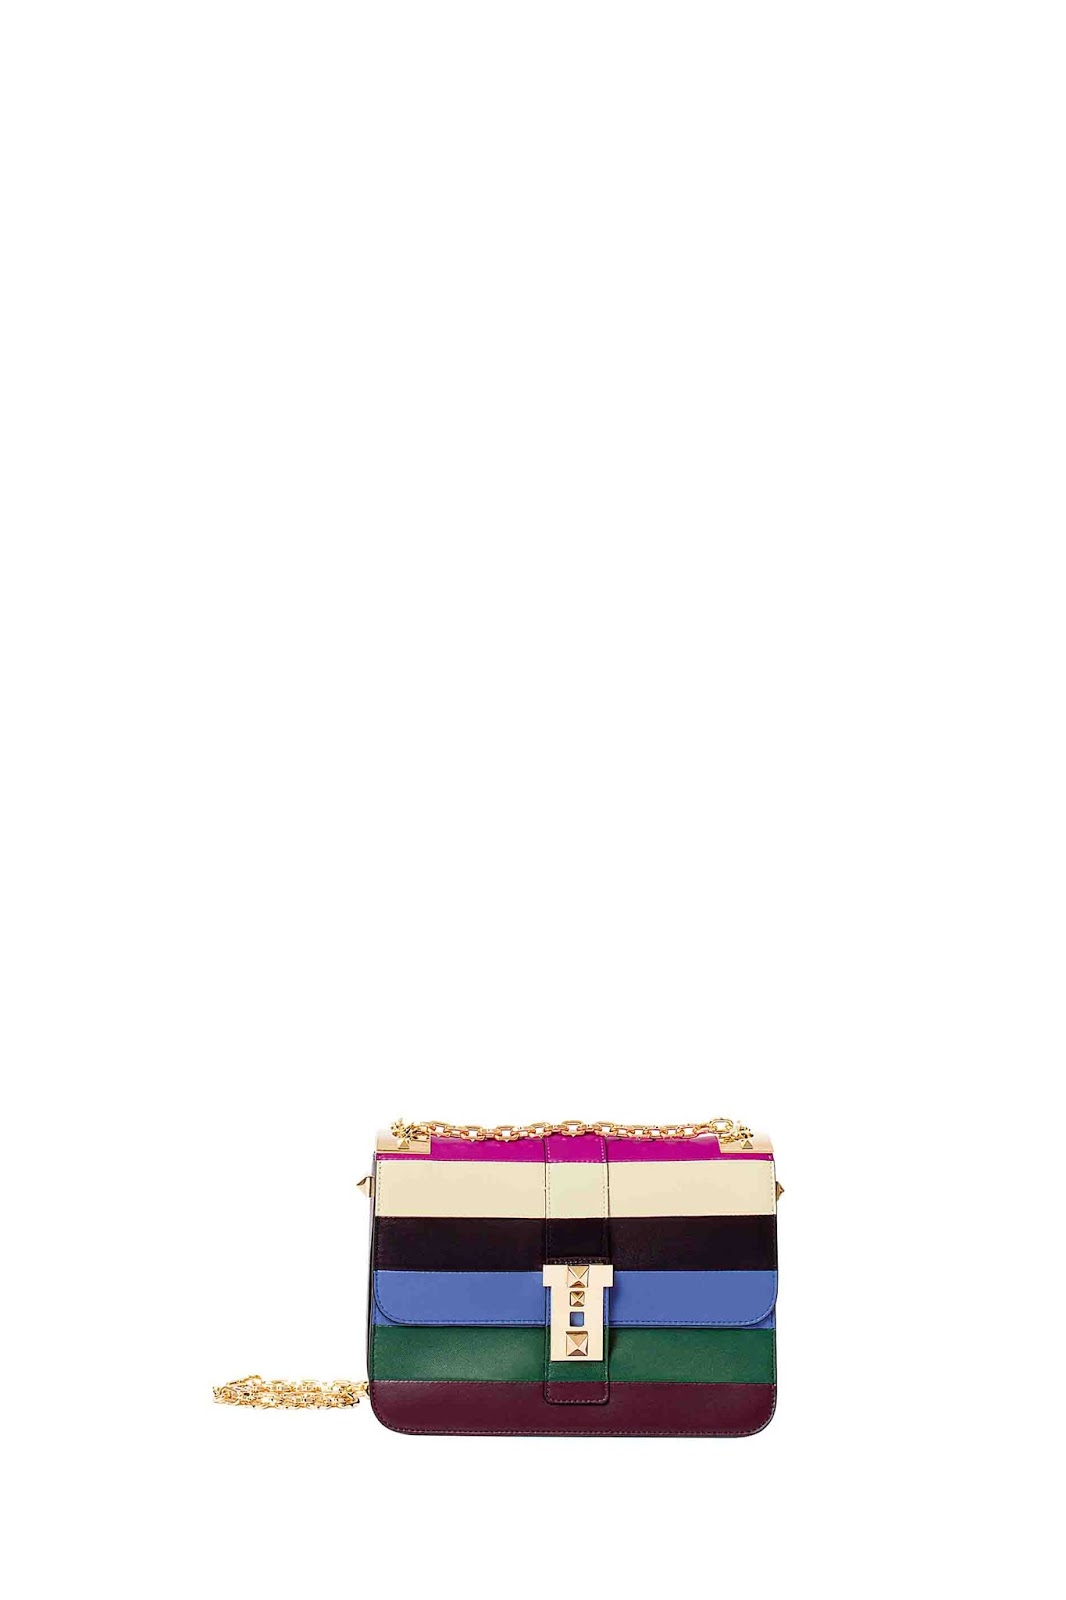 Introducing Valentino's B-Rockstud